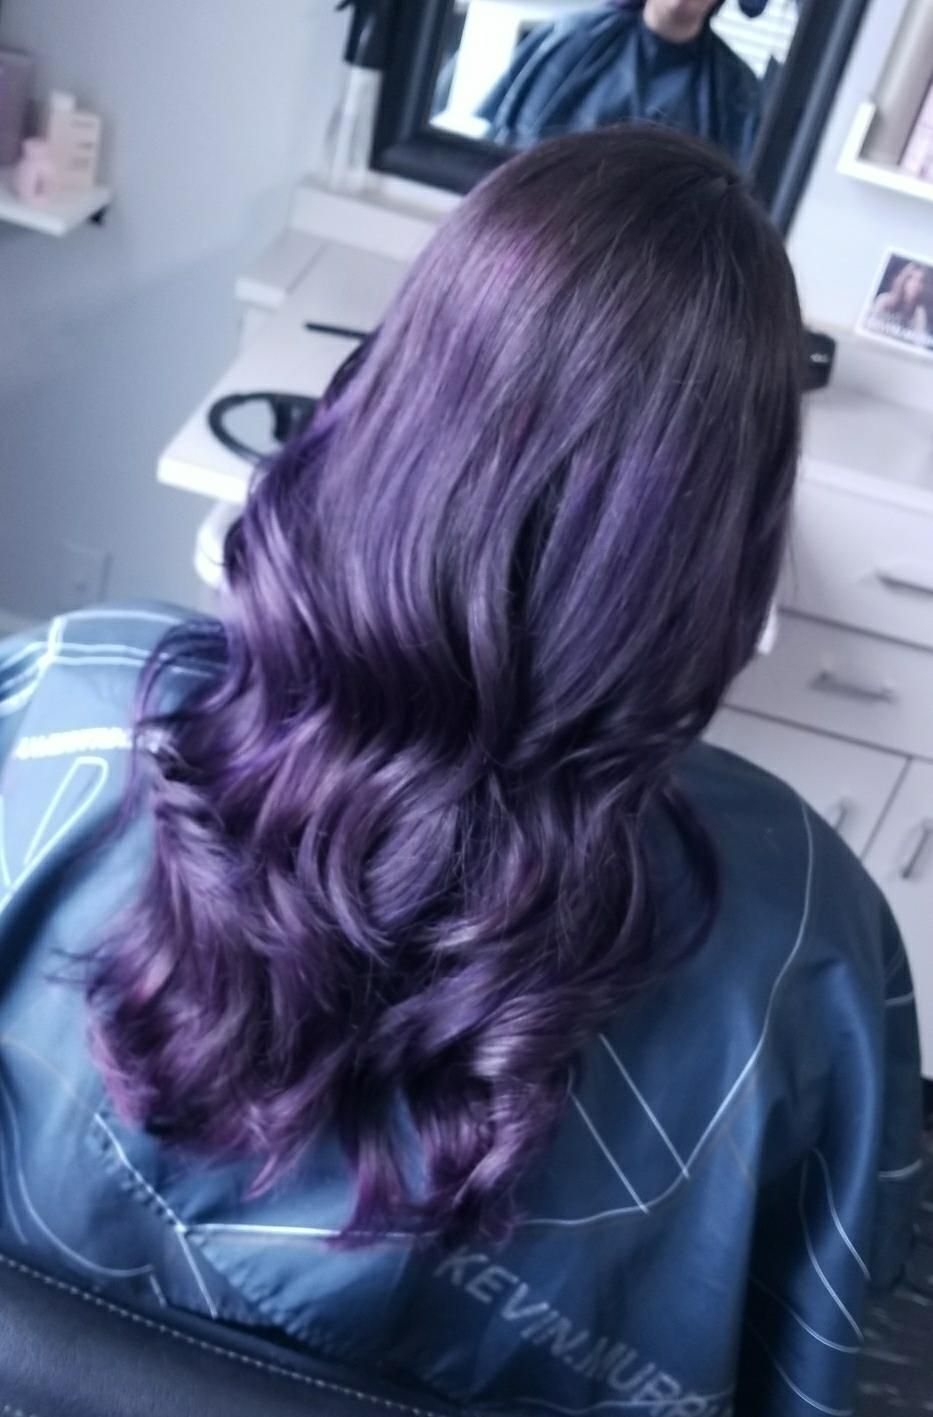 Color Consultation 0 I Love Vivid Fashion Colors It S Such A Passion Of Mine To Do I Will Give You In Depth Instruc Fantasy Hair Color Hair Salon Software